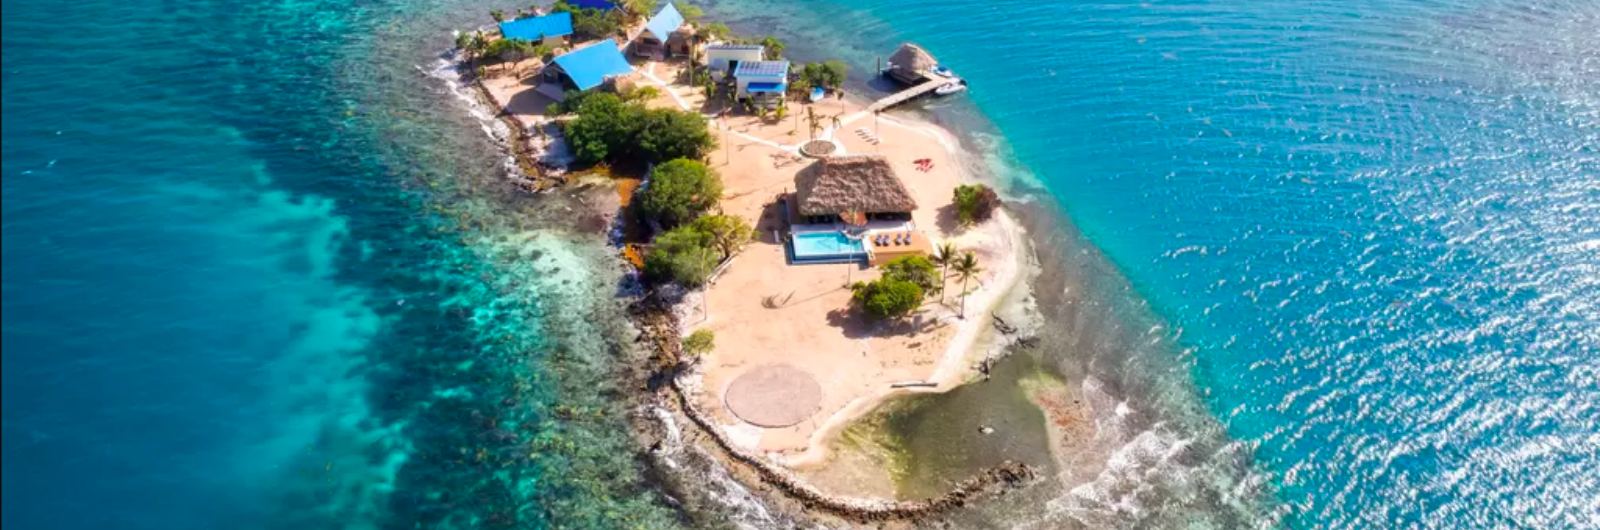 A Private Island in Belize To Call Your Own